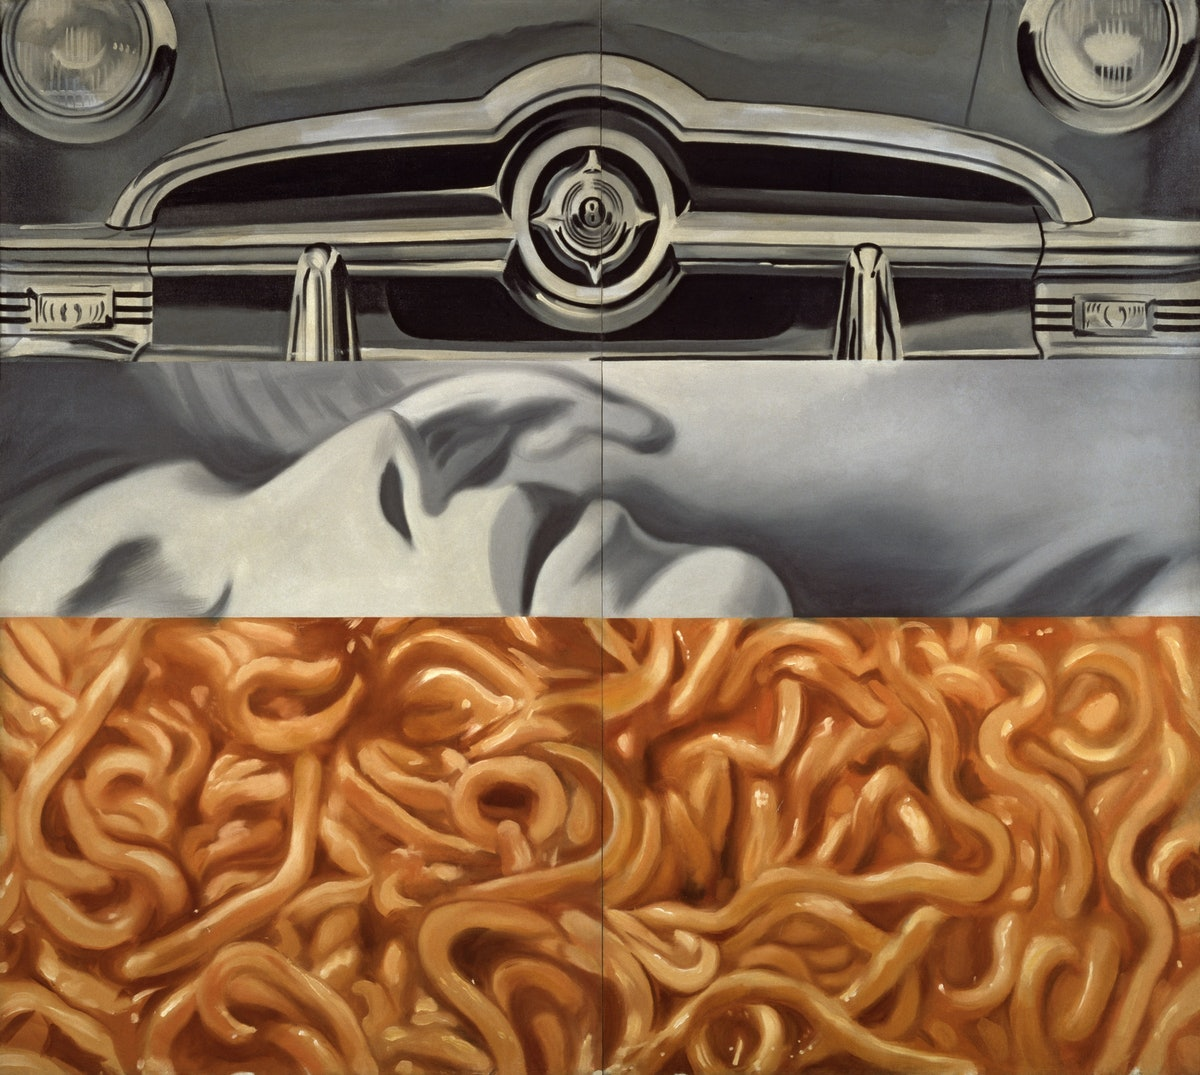 Rosenquist - I Love You with My Ford.jpg